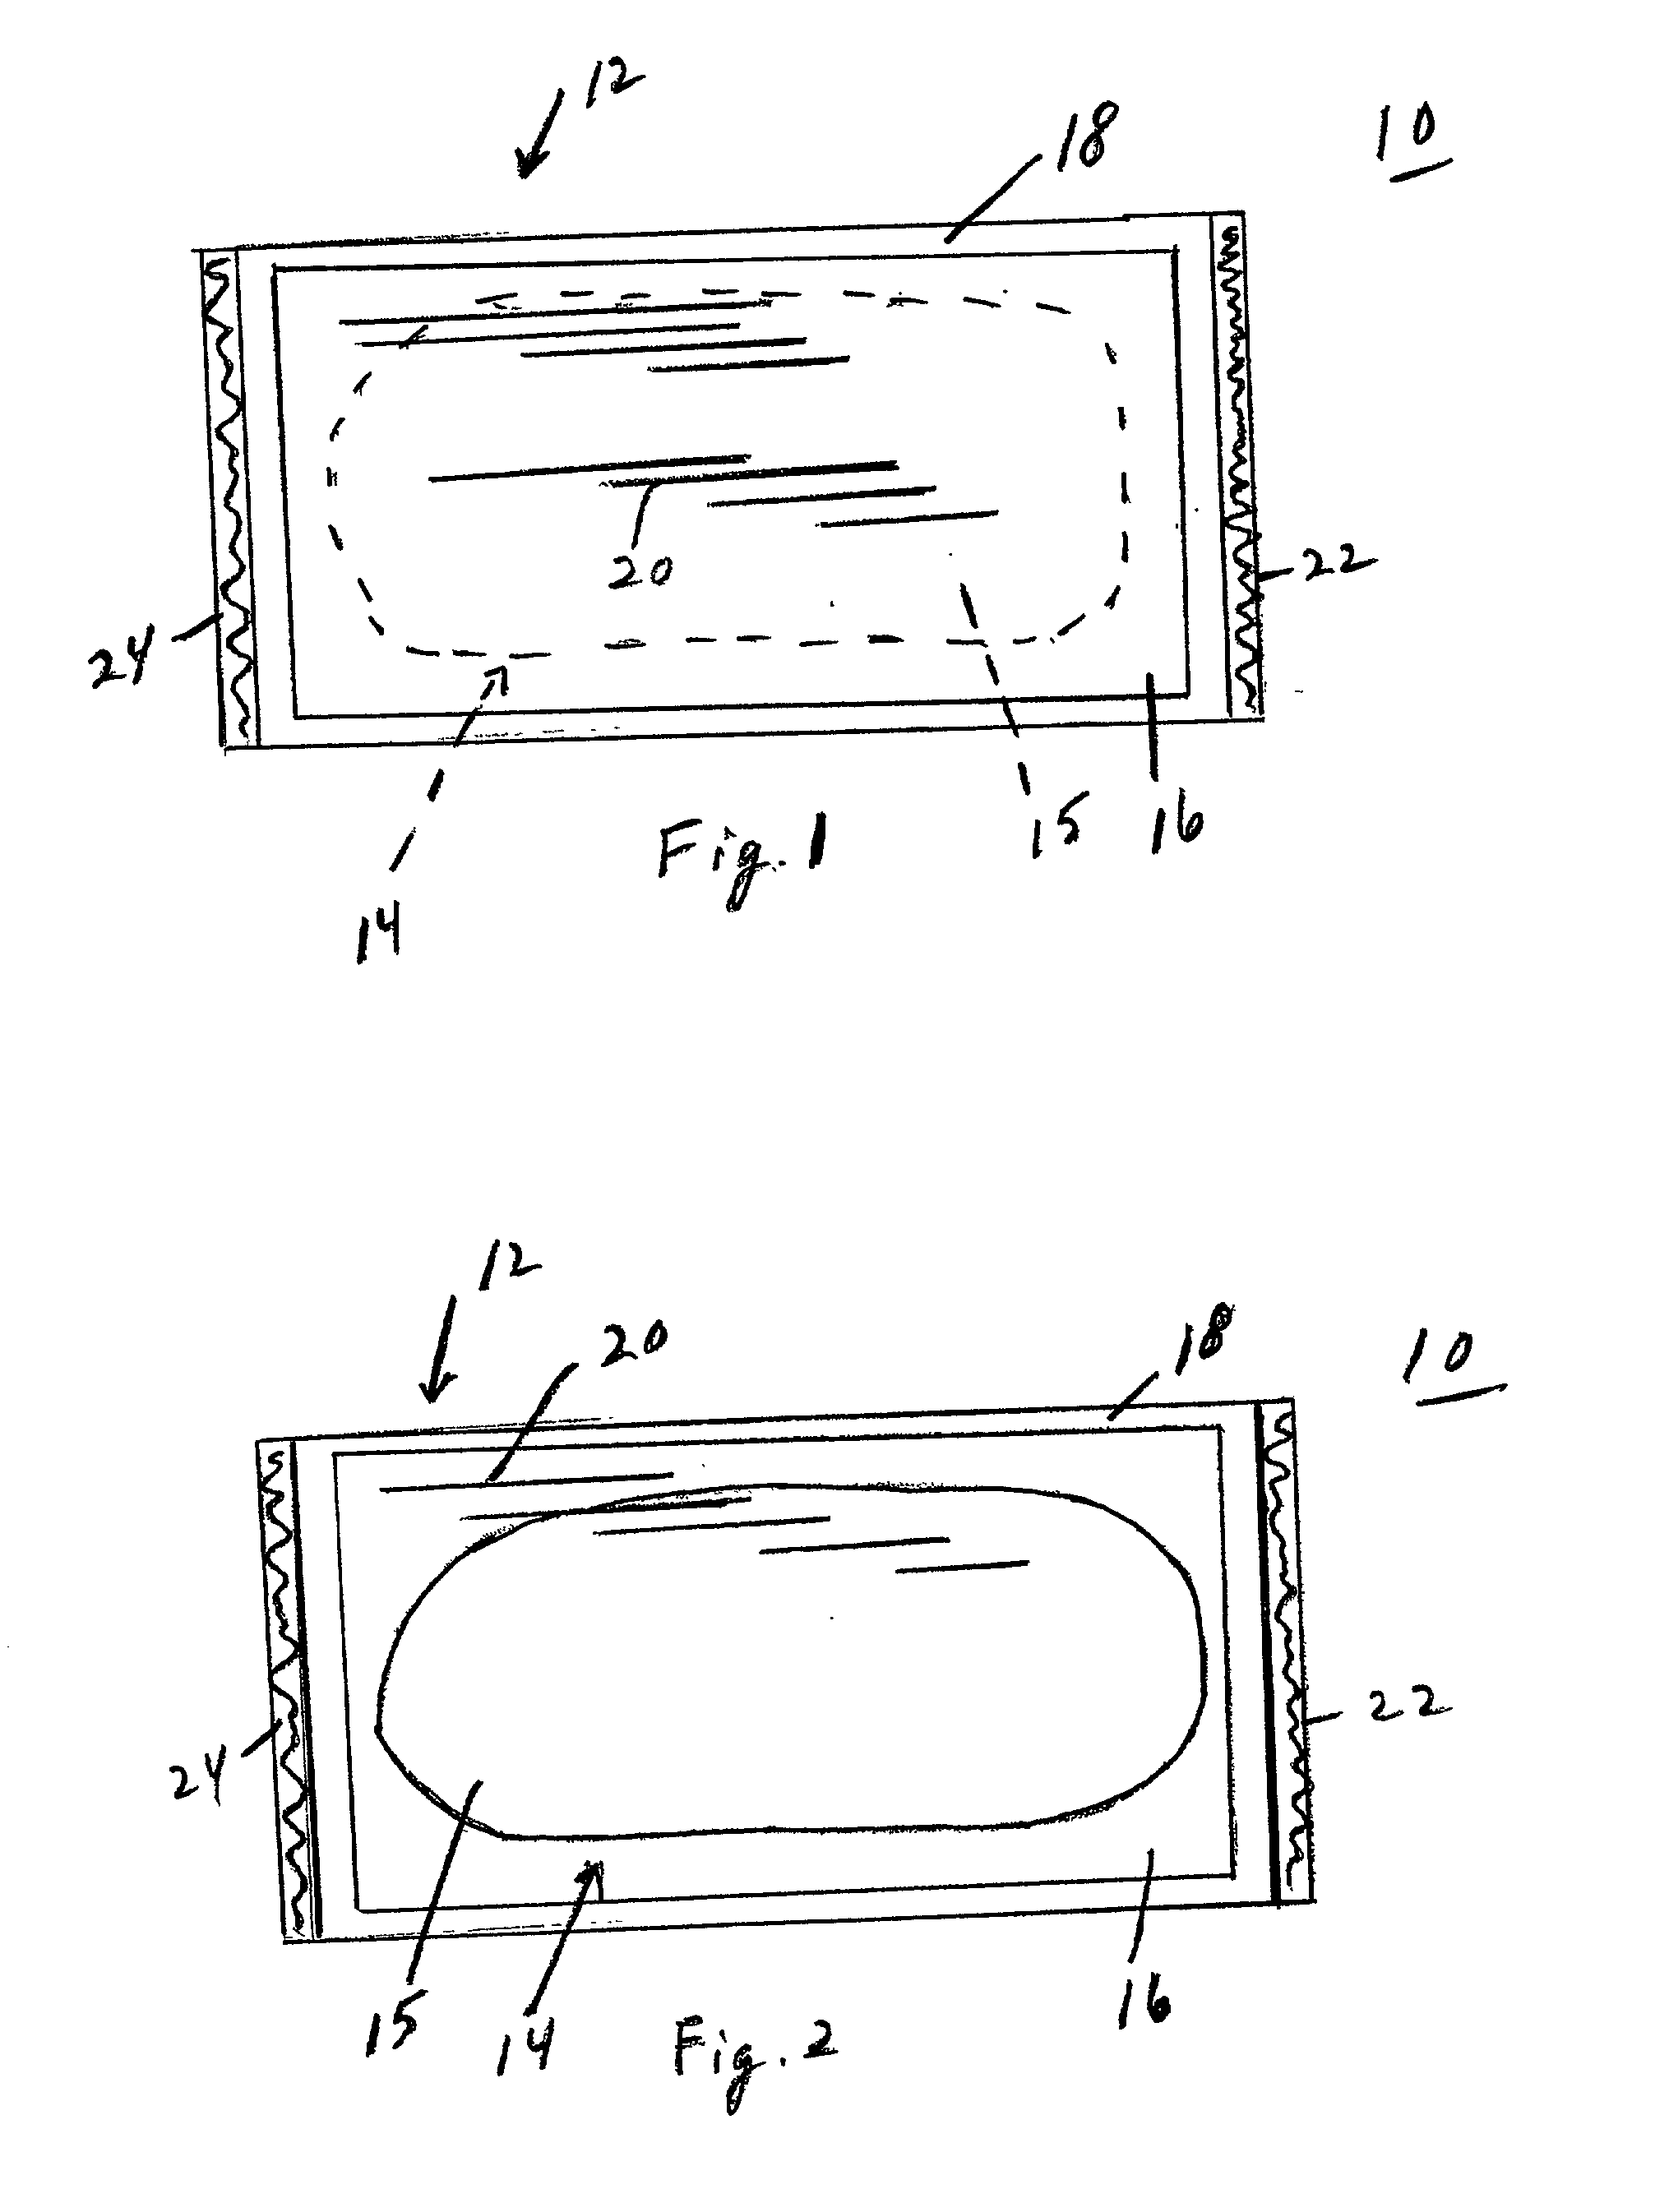 waves assignment microwave oven A microwave oven produces waves on one side of the oven, which are reflected on the opposite side and return to where they started the reflected waves will encounter the original waves, cancelling each other out in some places, while adding up in others: the waves bouncing about in the oven interfere with each other, creating a standing wave.